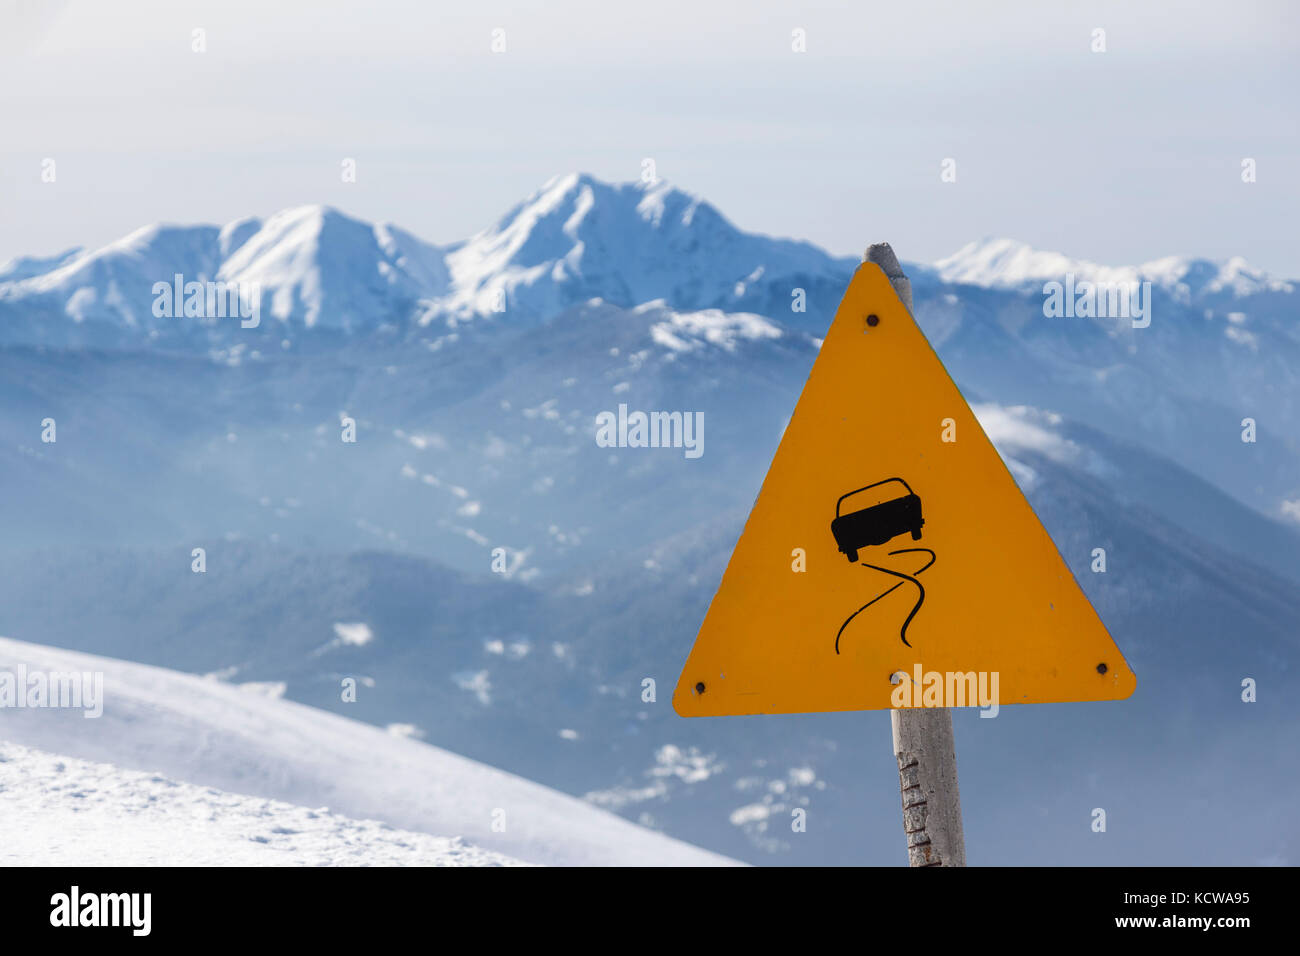 Slippery road sign, in winter landscape and mountains of snow. - Stock Image